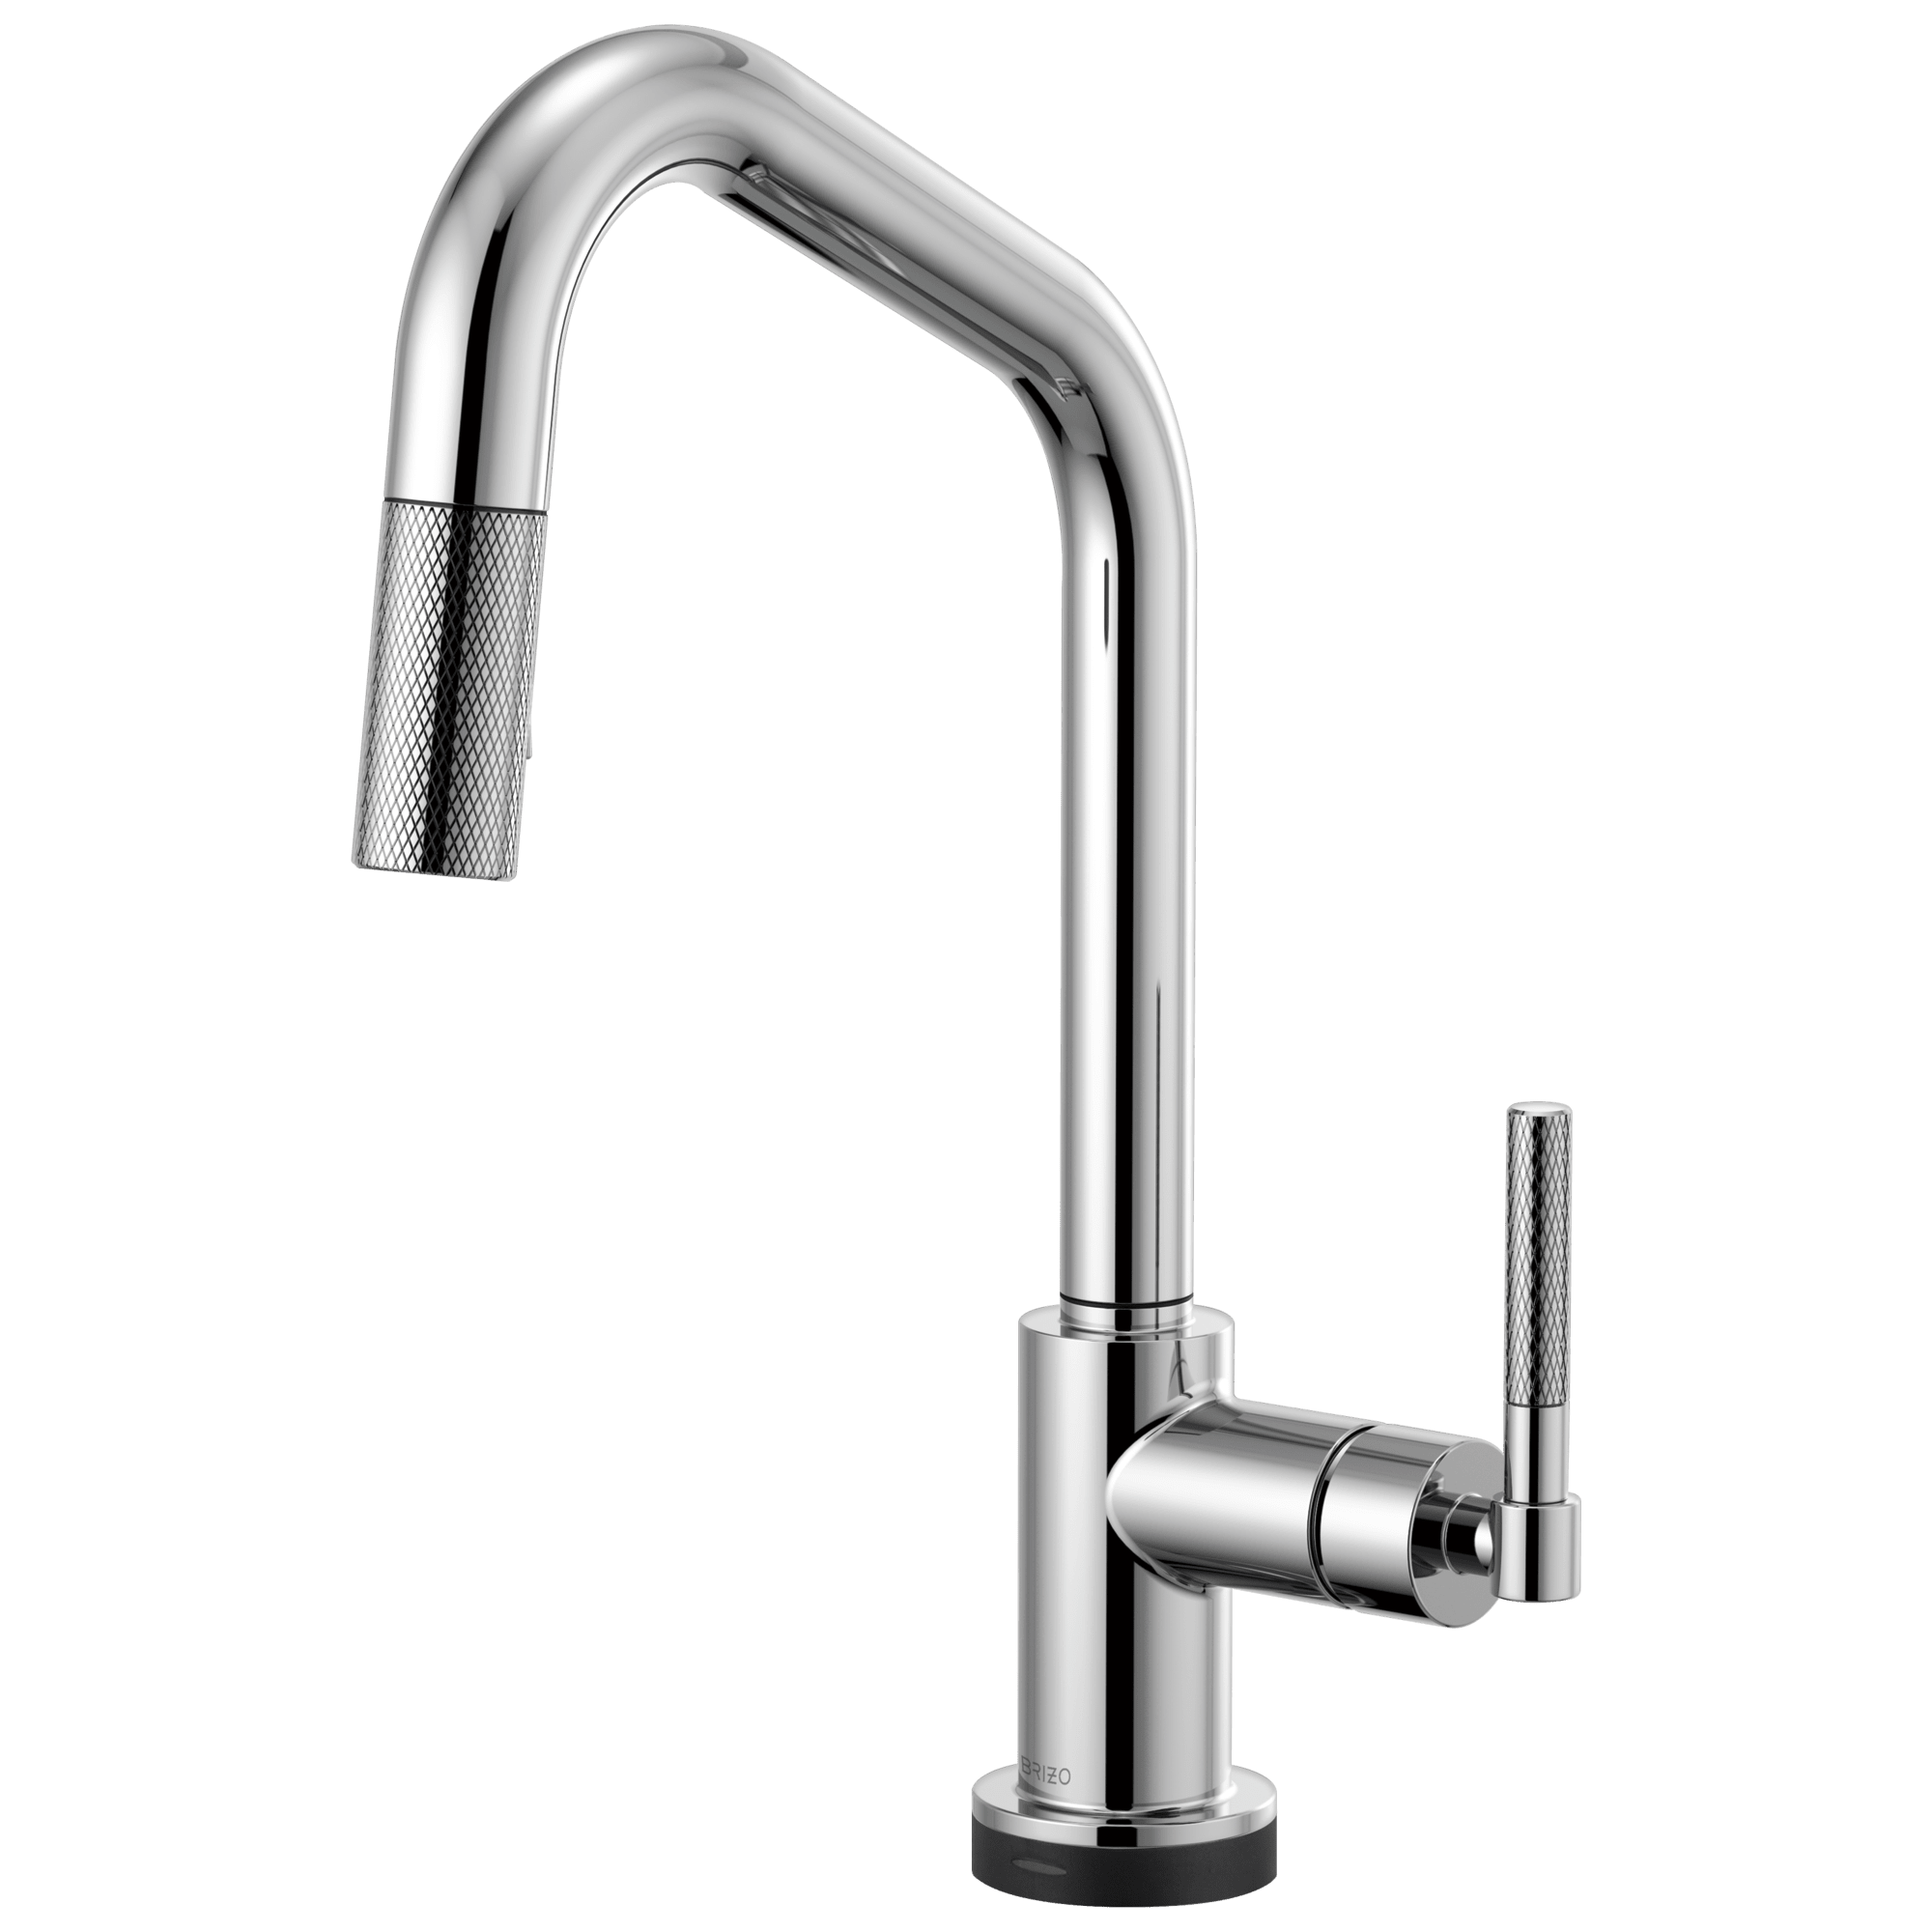 faucets brizo interior from inspired vuelo stylish design kitchen faucet swan